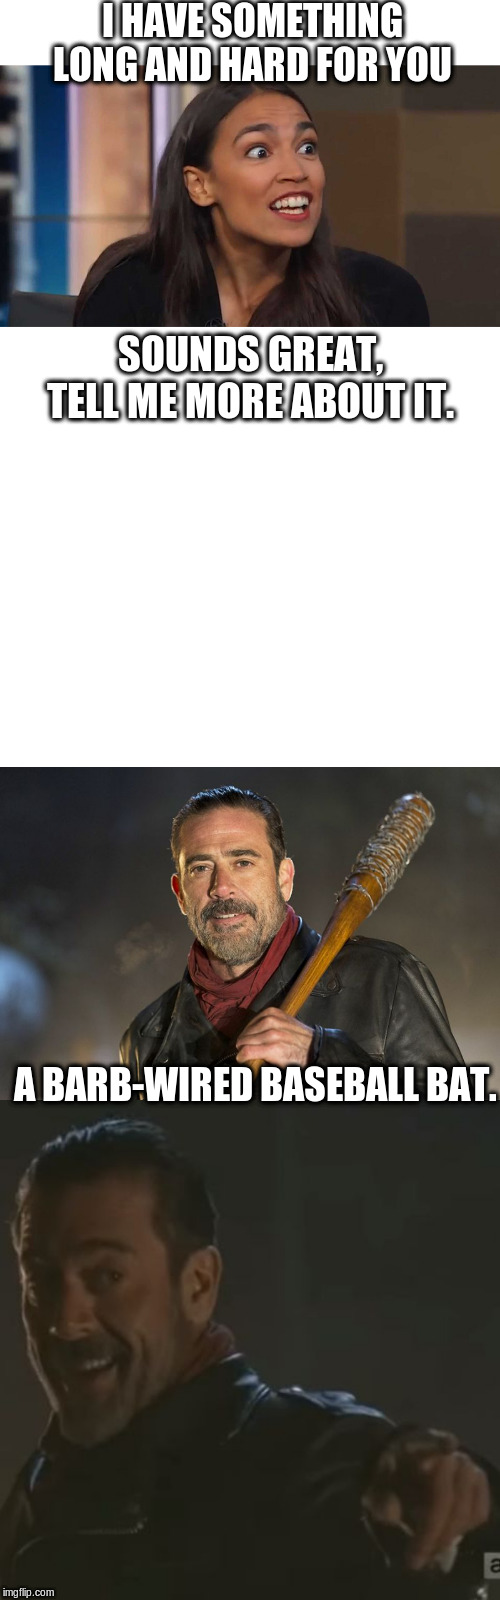 Something long and hard for you |  I HAVE SOMETHING LONG AND HARD FOR YOU; SOUNDS GREAT, TELL ME MORE ABOUT IT. A BARB-WIRED BASEBALL BAT. | image tagged in blank white template,negan i get it,negan,lizard woman aoc | made w/ Imgflip meme maker